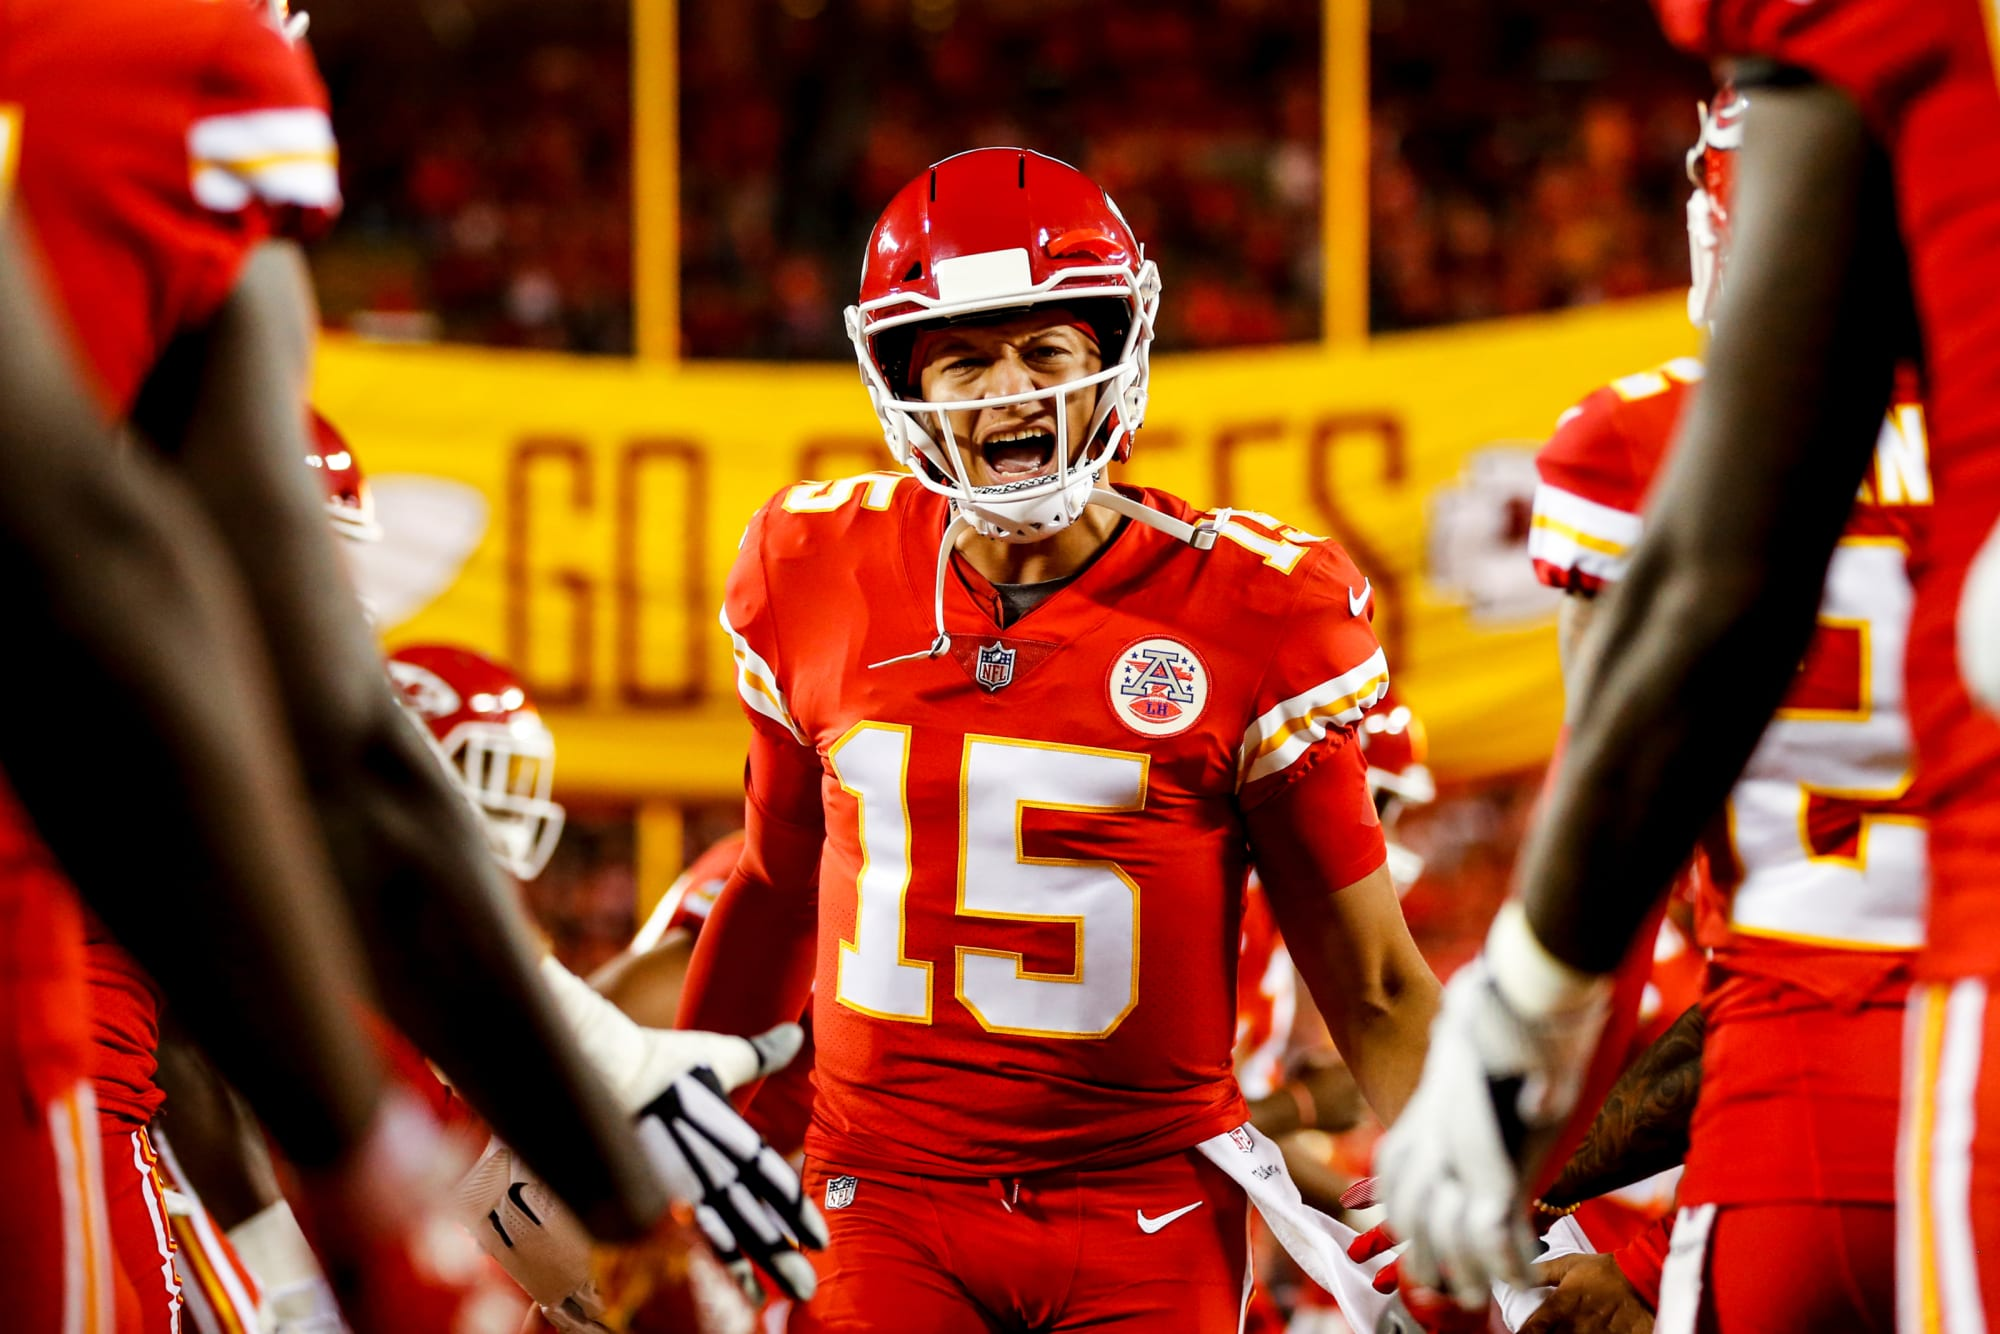 Chiefs Chatter: When the NFL's best player plays for your team